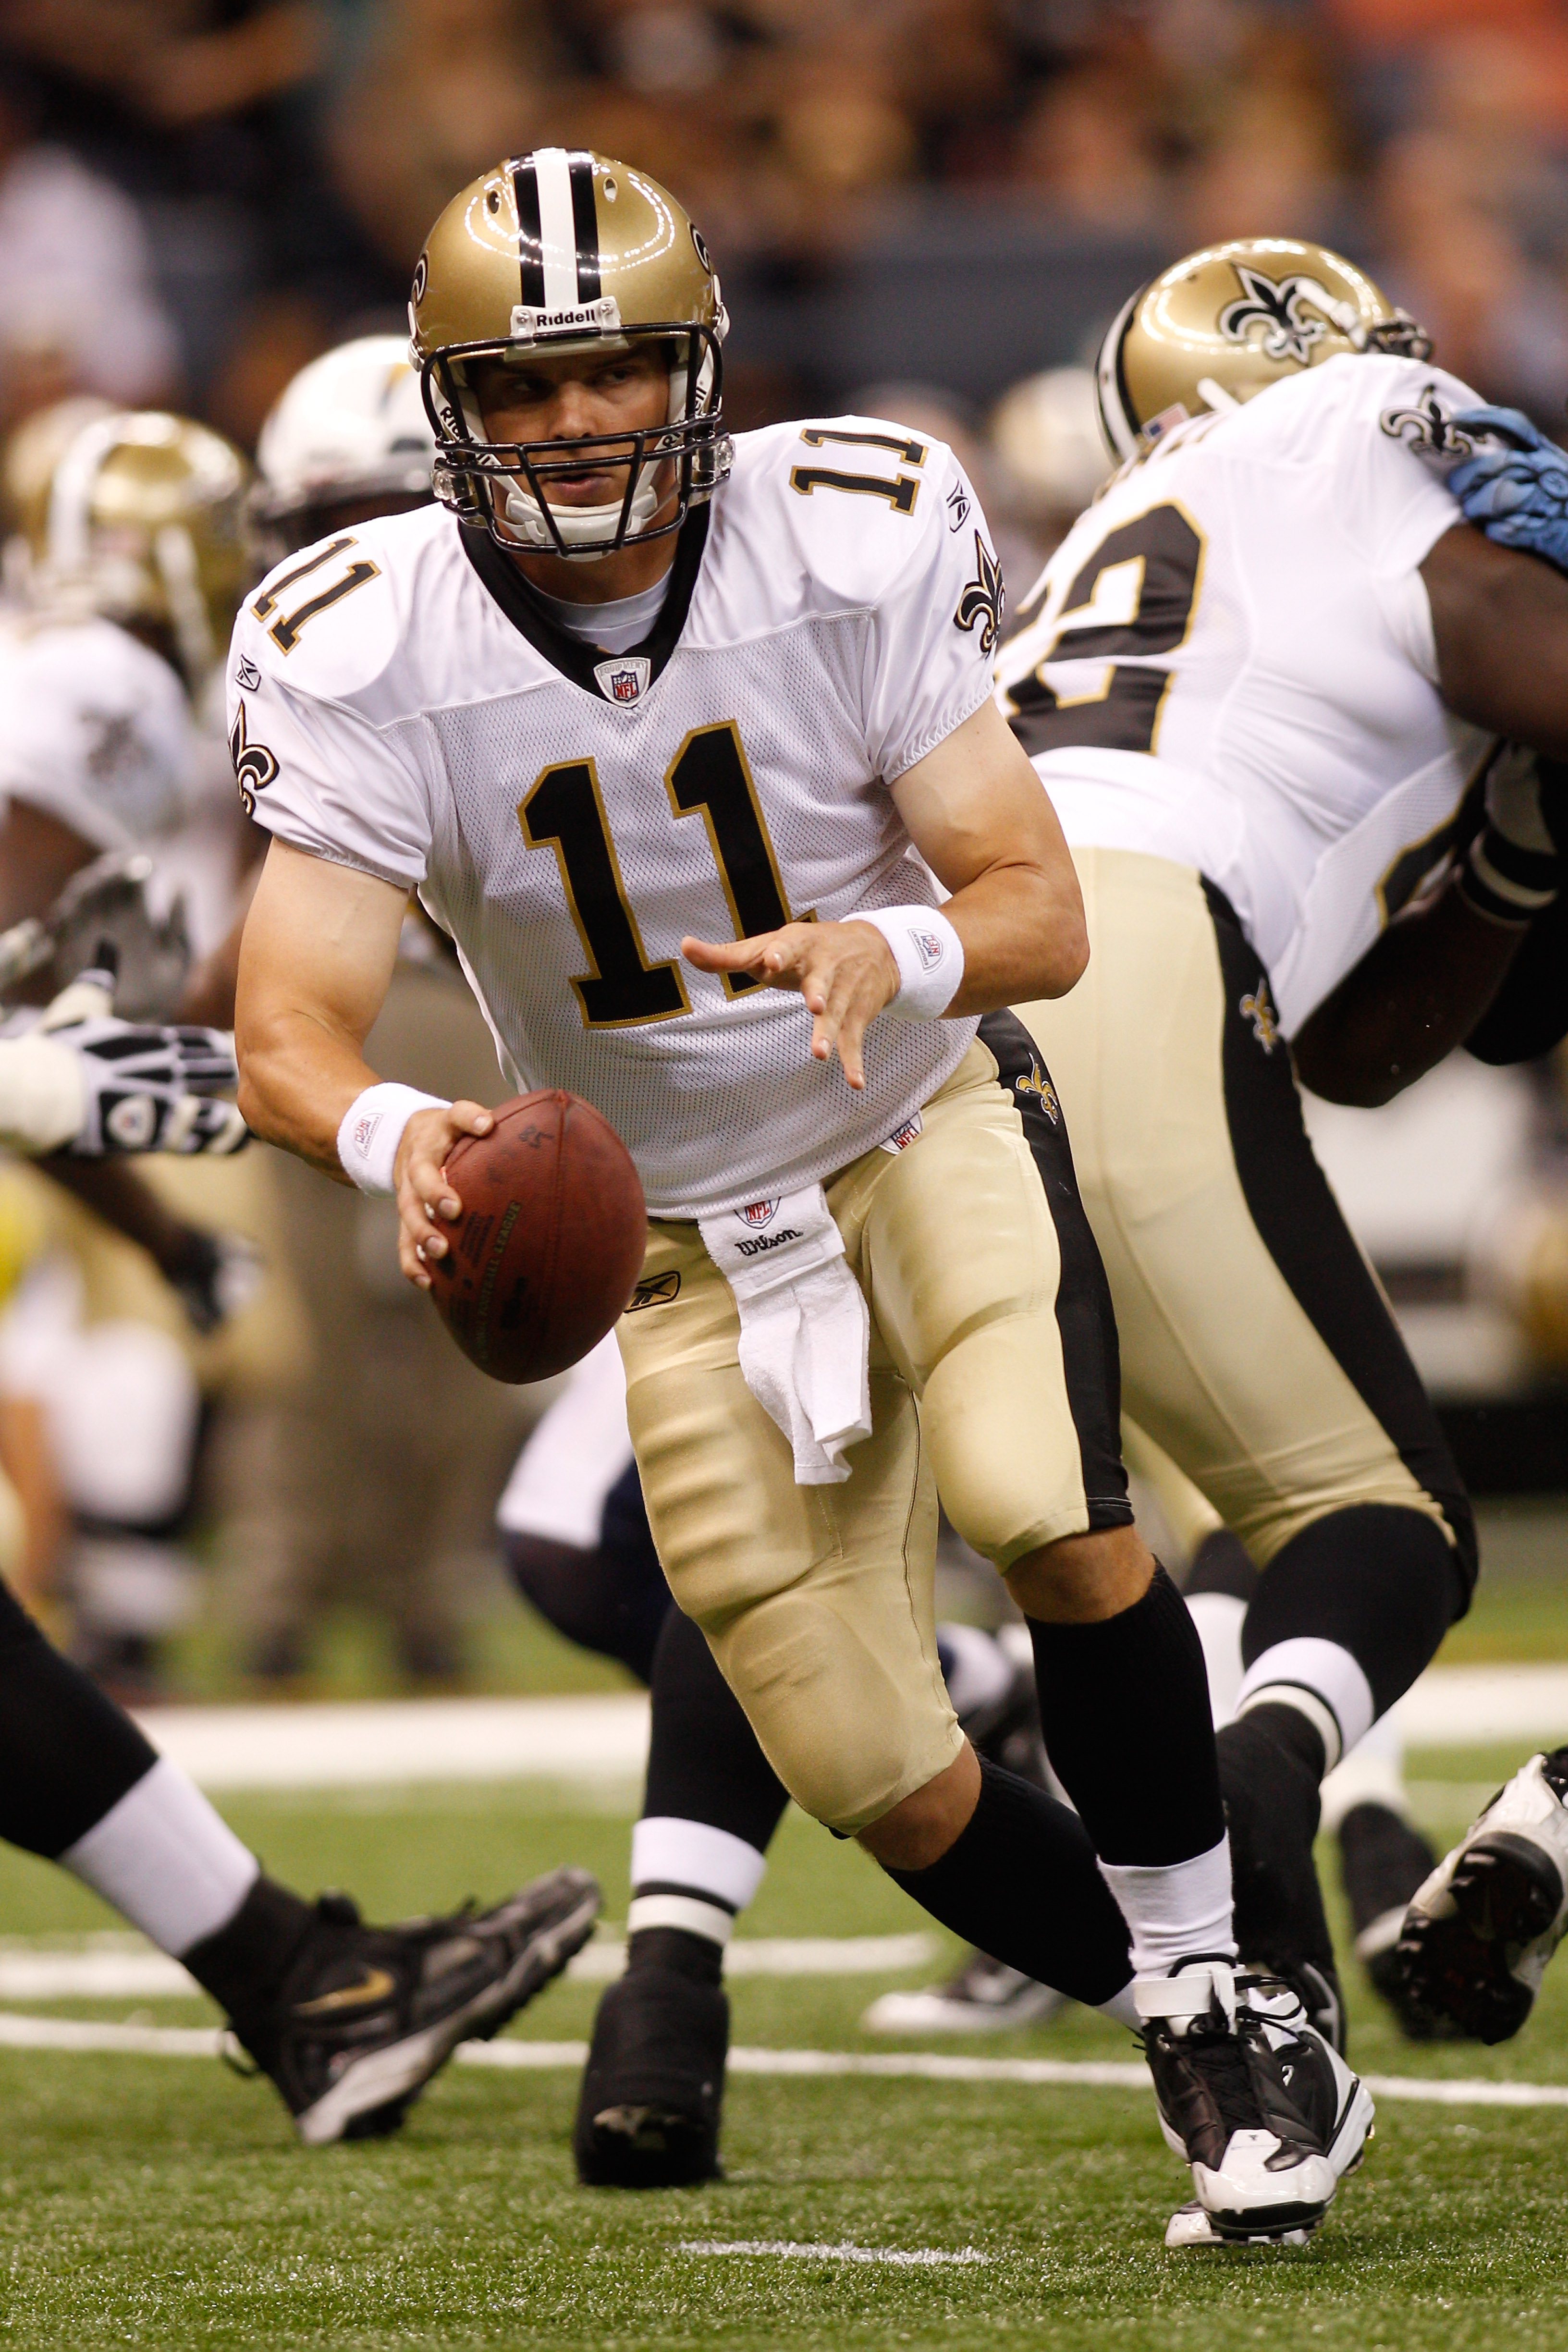 NEW ORLEANS - AUGUST 27:  Patrick Ramsey #11 of the New Orleans Saints in action against the San Diego Chargers at the Louisiana Superdome on August 27, 2010 in New Orleans, Louisiana.  (Photo by Chris Graythen/Getty Images)